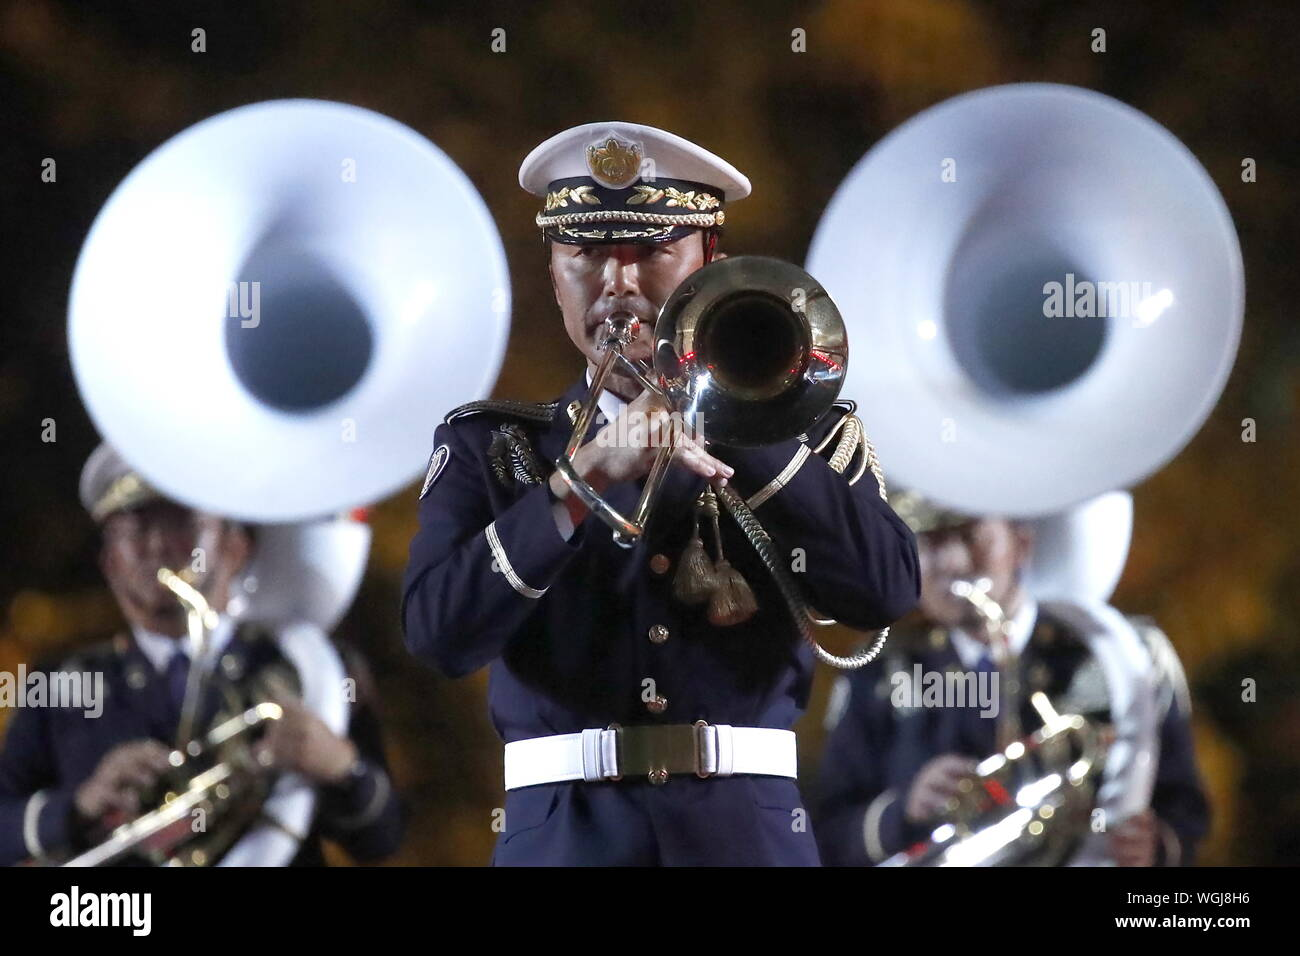 Moscow, Russia. 01st Sep, 2019. MOSCOW, RUSSIA - SEPTEMBER 1, 2019: The Japan Ground Self-Defense Force (JGSDF) Central Band perform during the closing ceremony of the 12th Spasskaya Tower International Military Music Festival in Red Square. Artyom Geodakyan/TASS Credit: ITAR-TASS News Agency/Alamy Live News Stock Photo